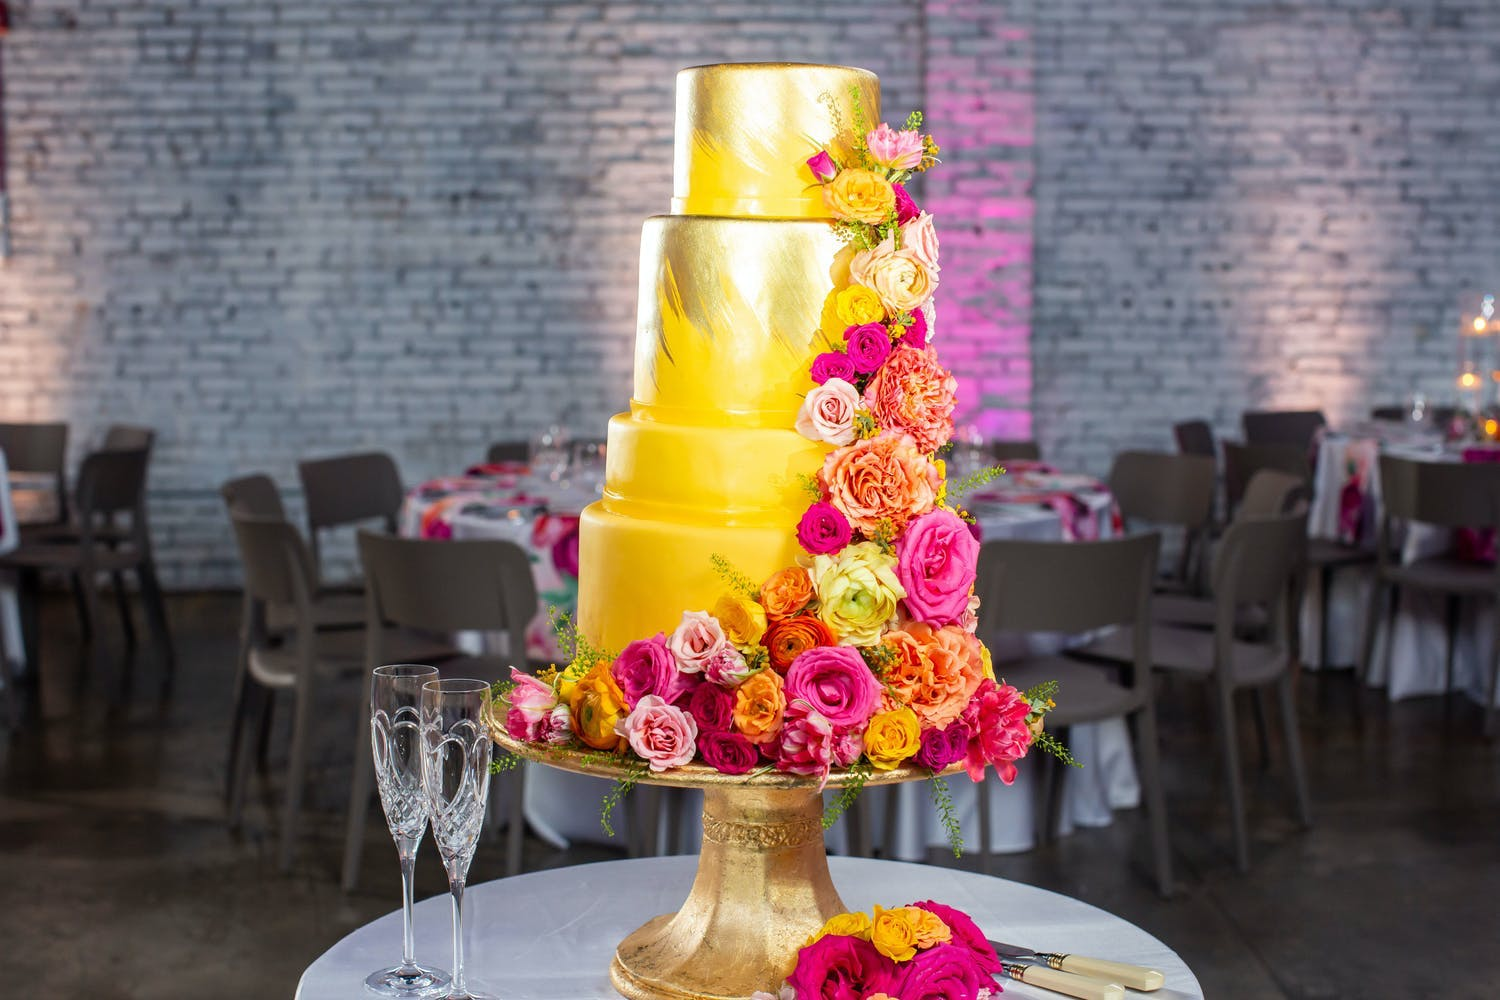 Gold Wedding Cake With Bright and Colorful Flowers | PartySlate